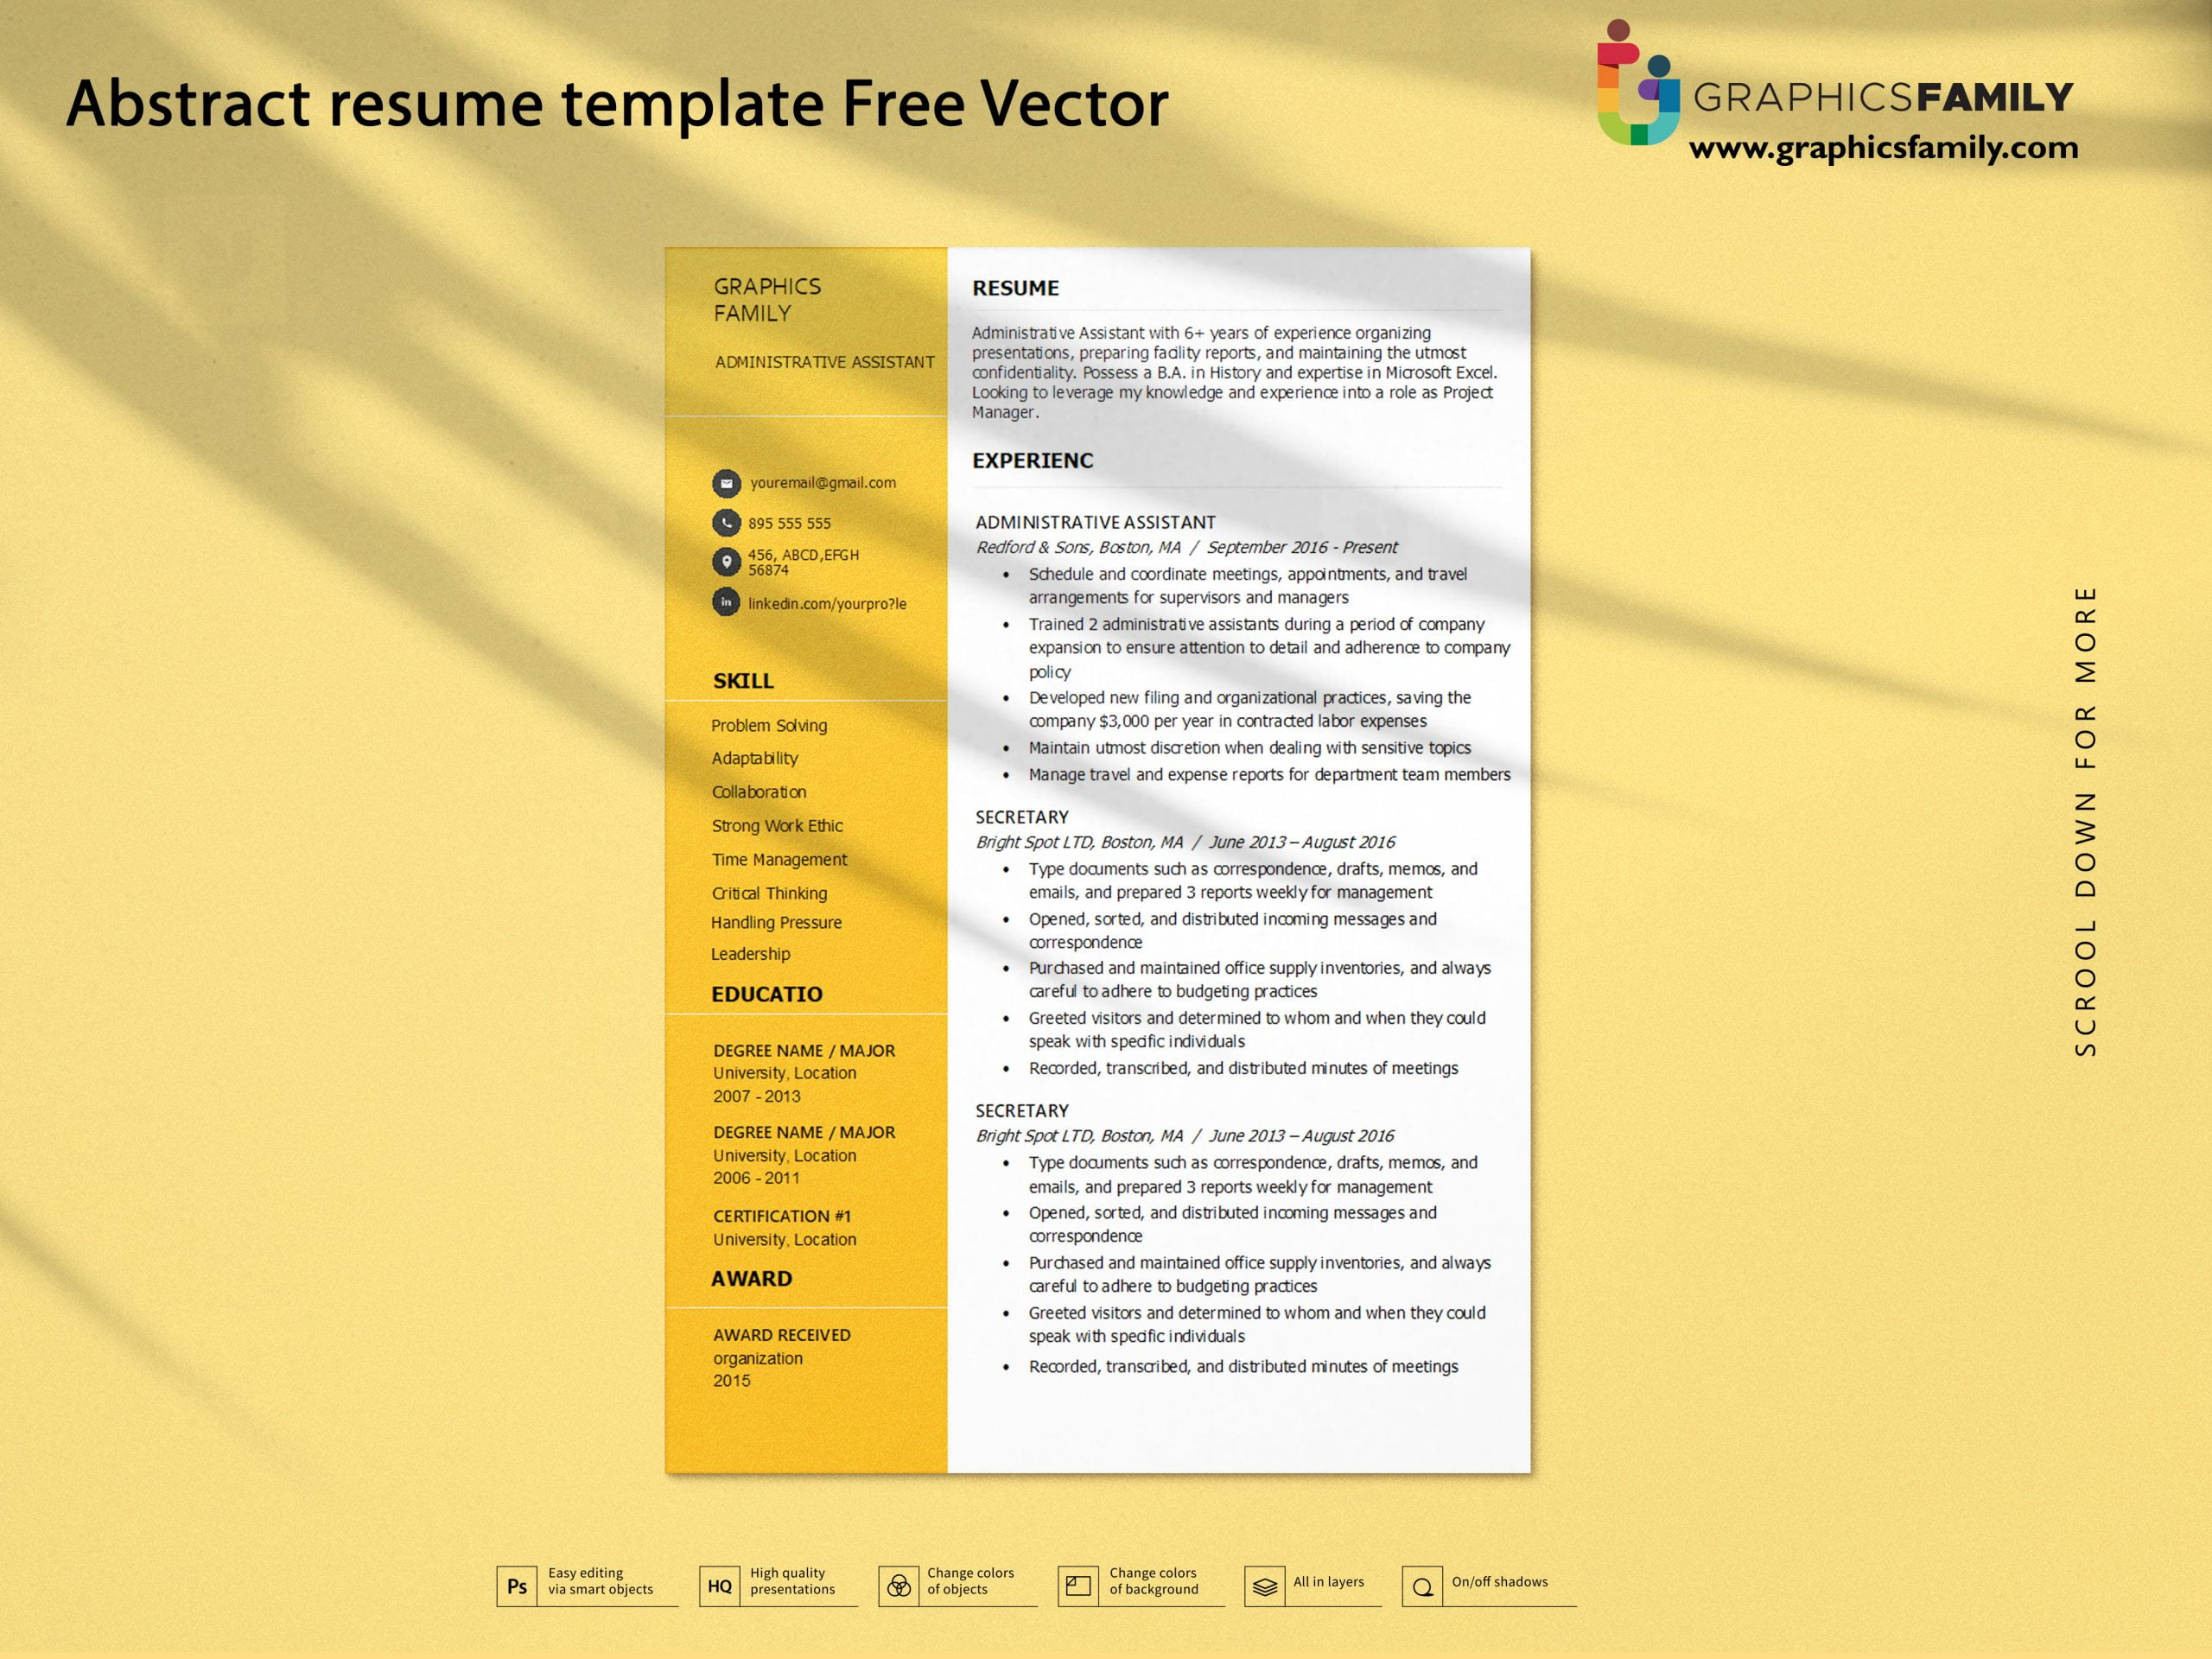 Abstract resume template Free Vector Download